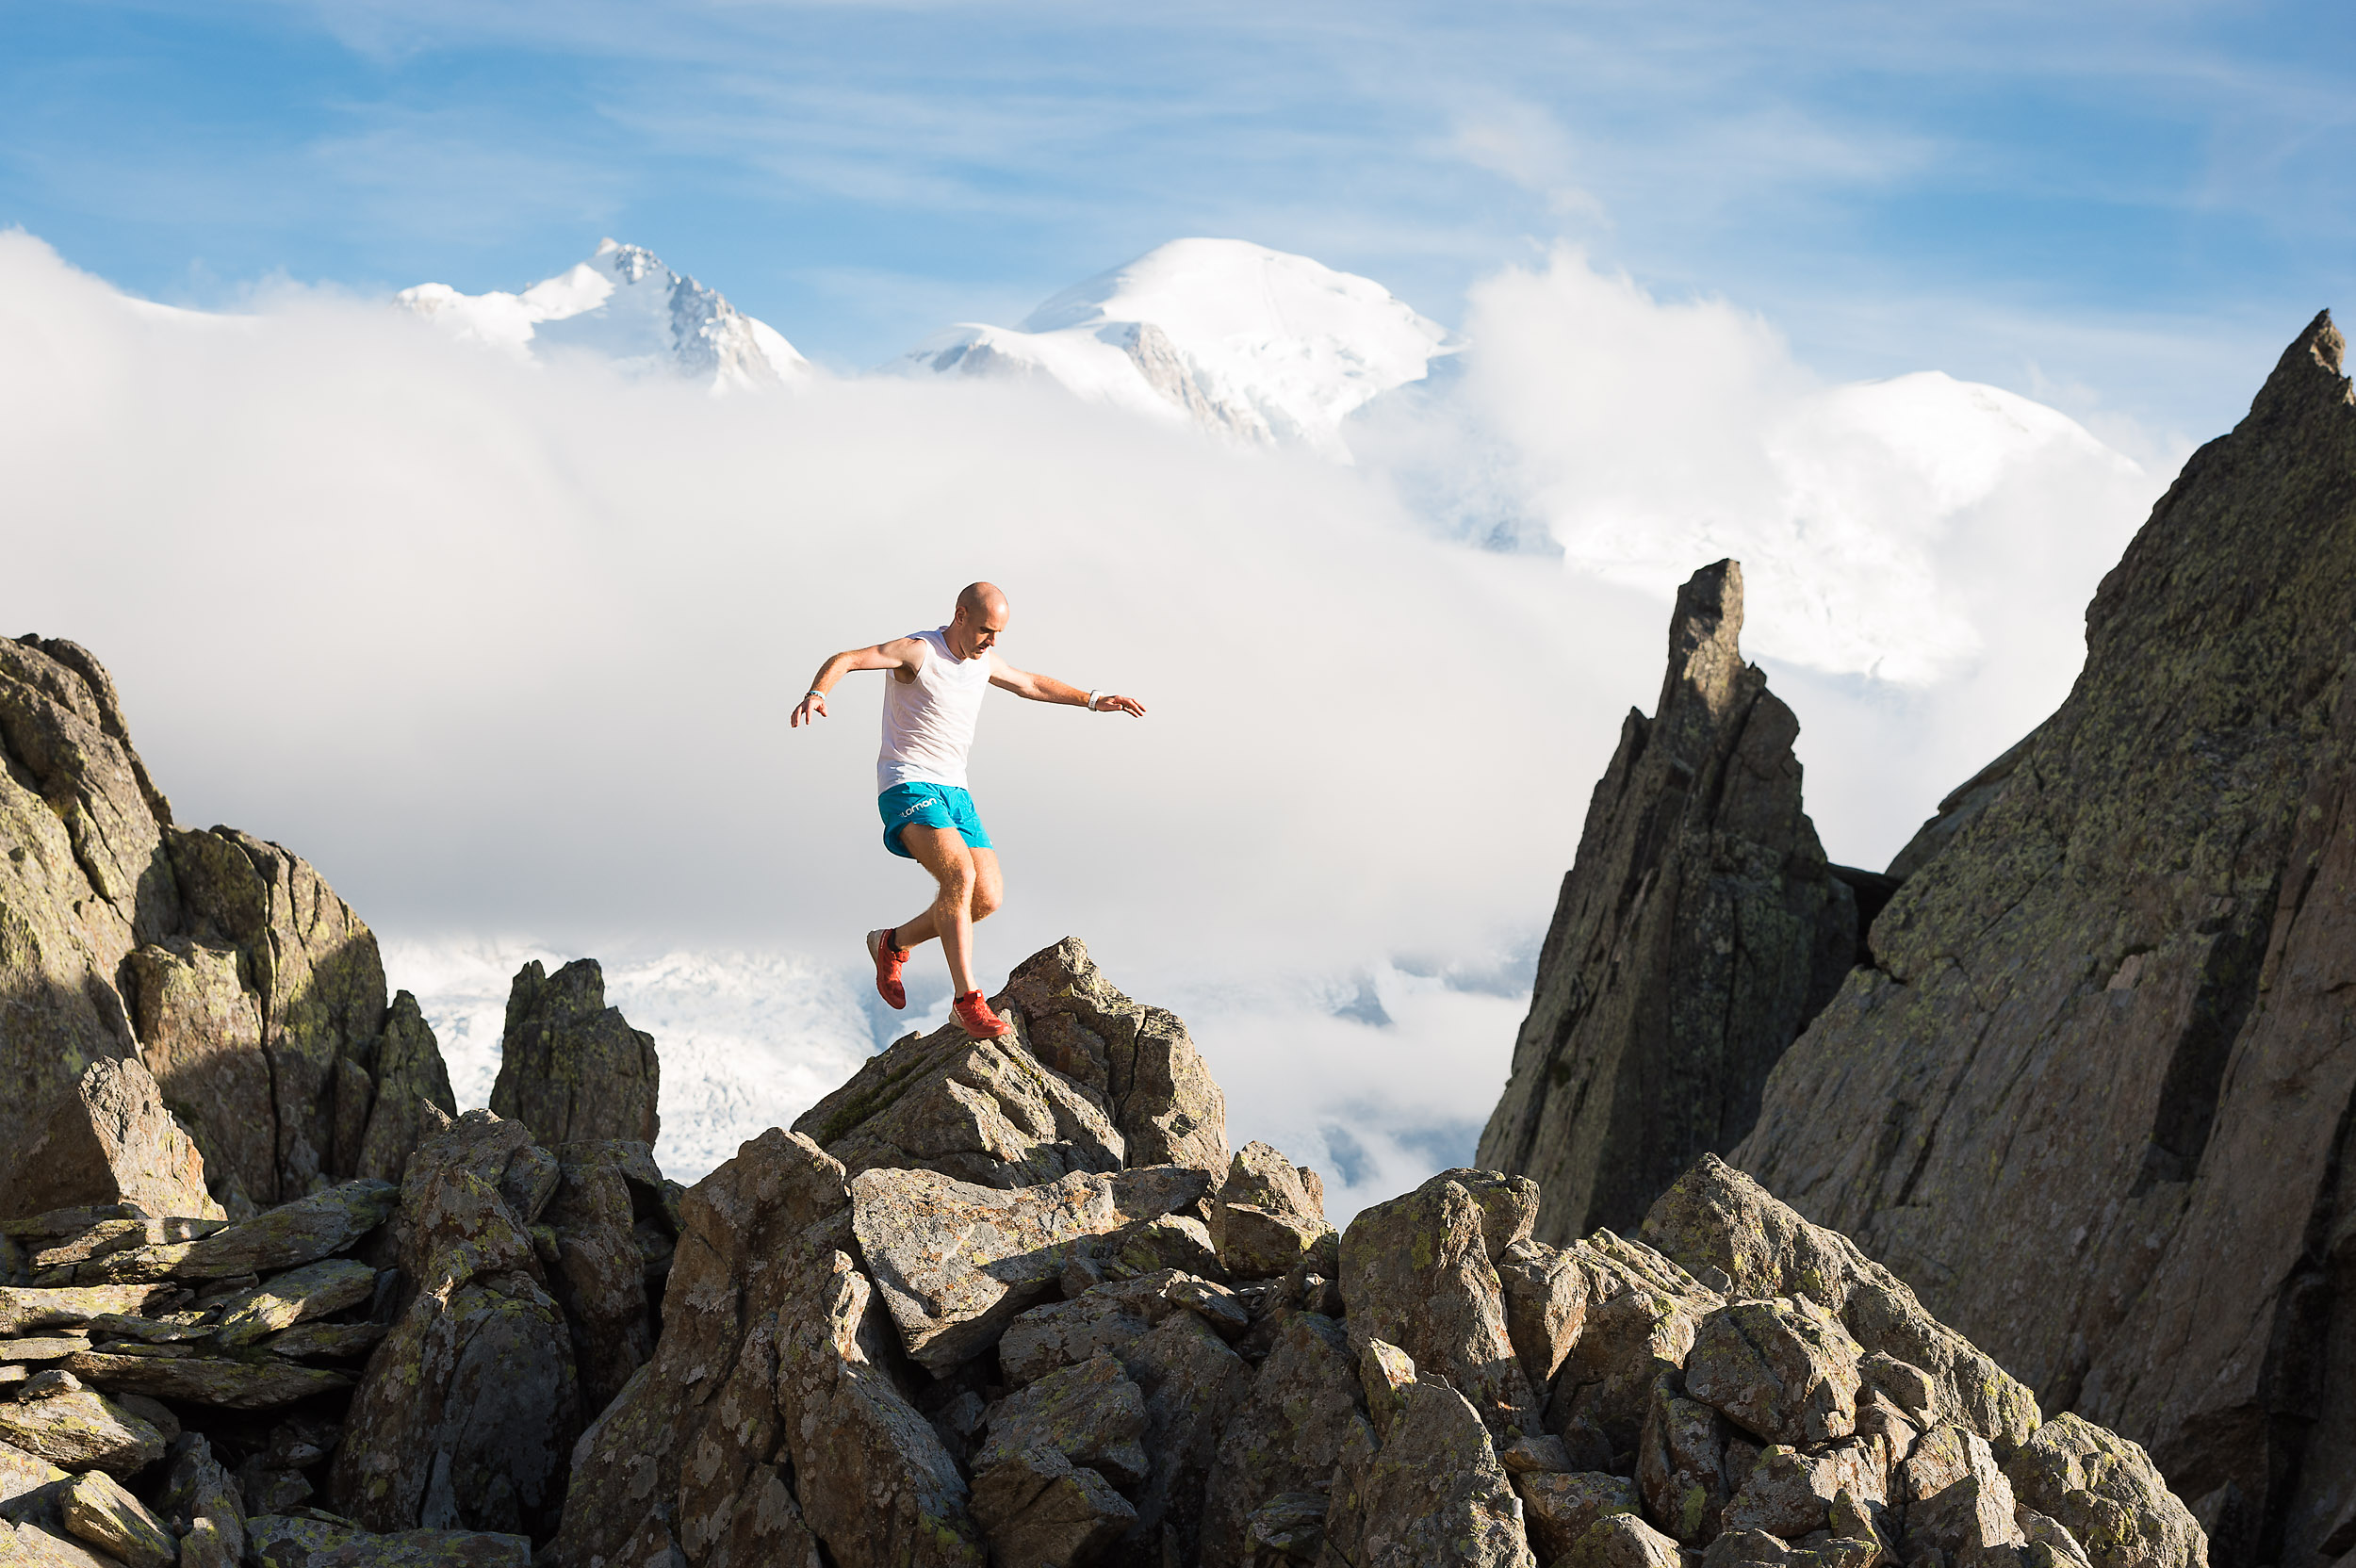 Athlete Donnie Campbell mountain running near Le Brévent, Chamonix, with Mont Blanc in the background